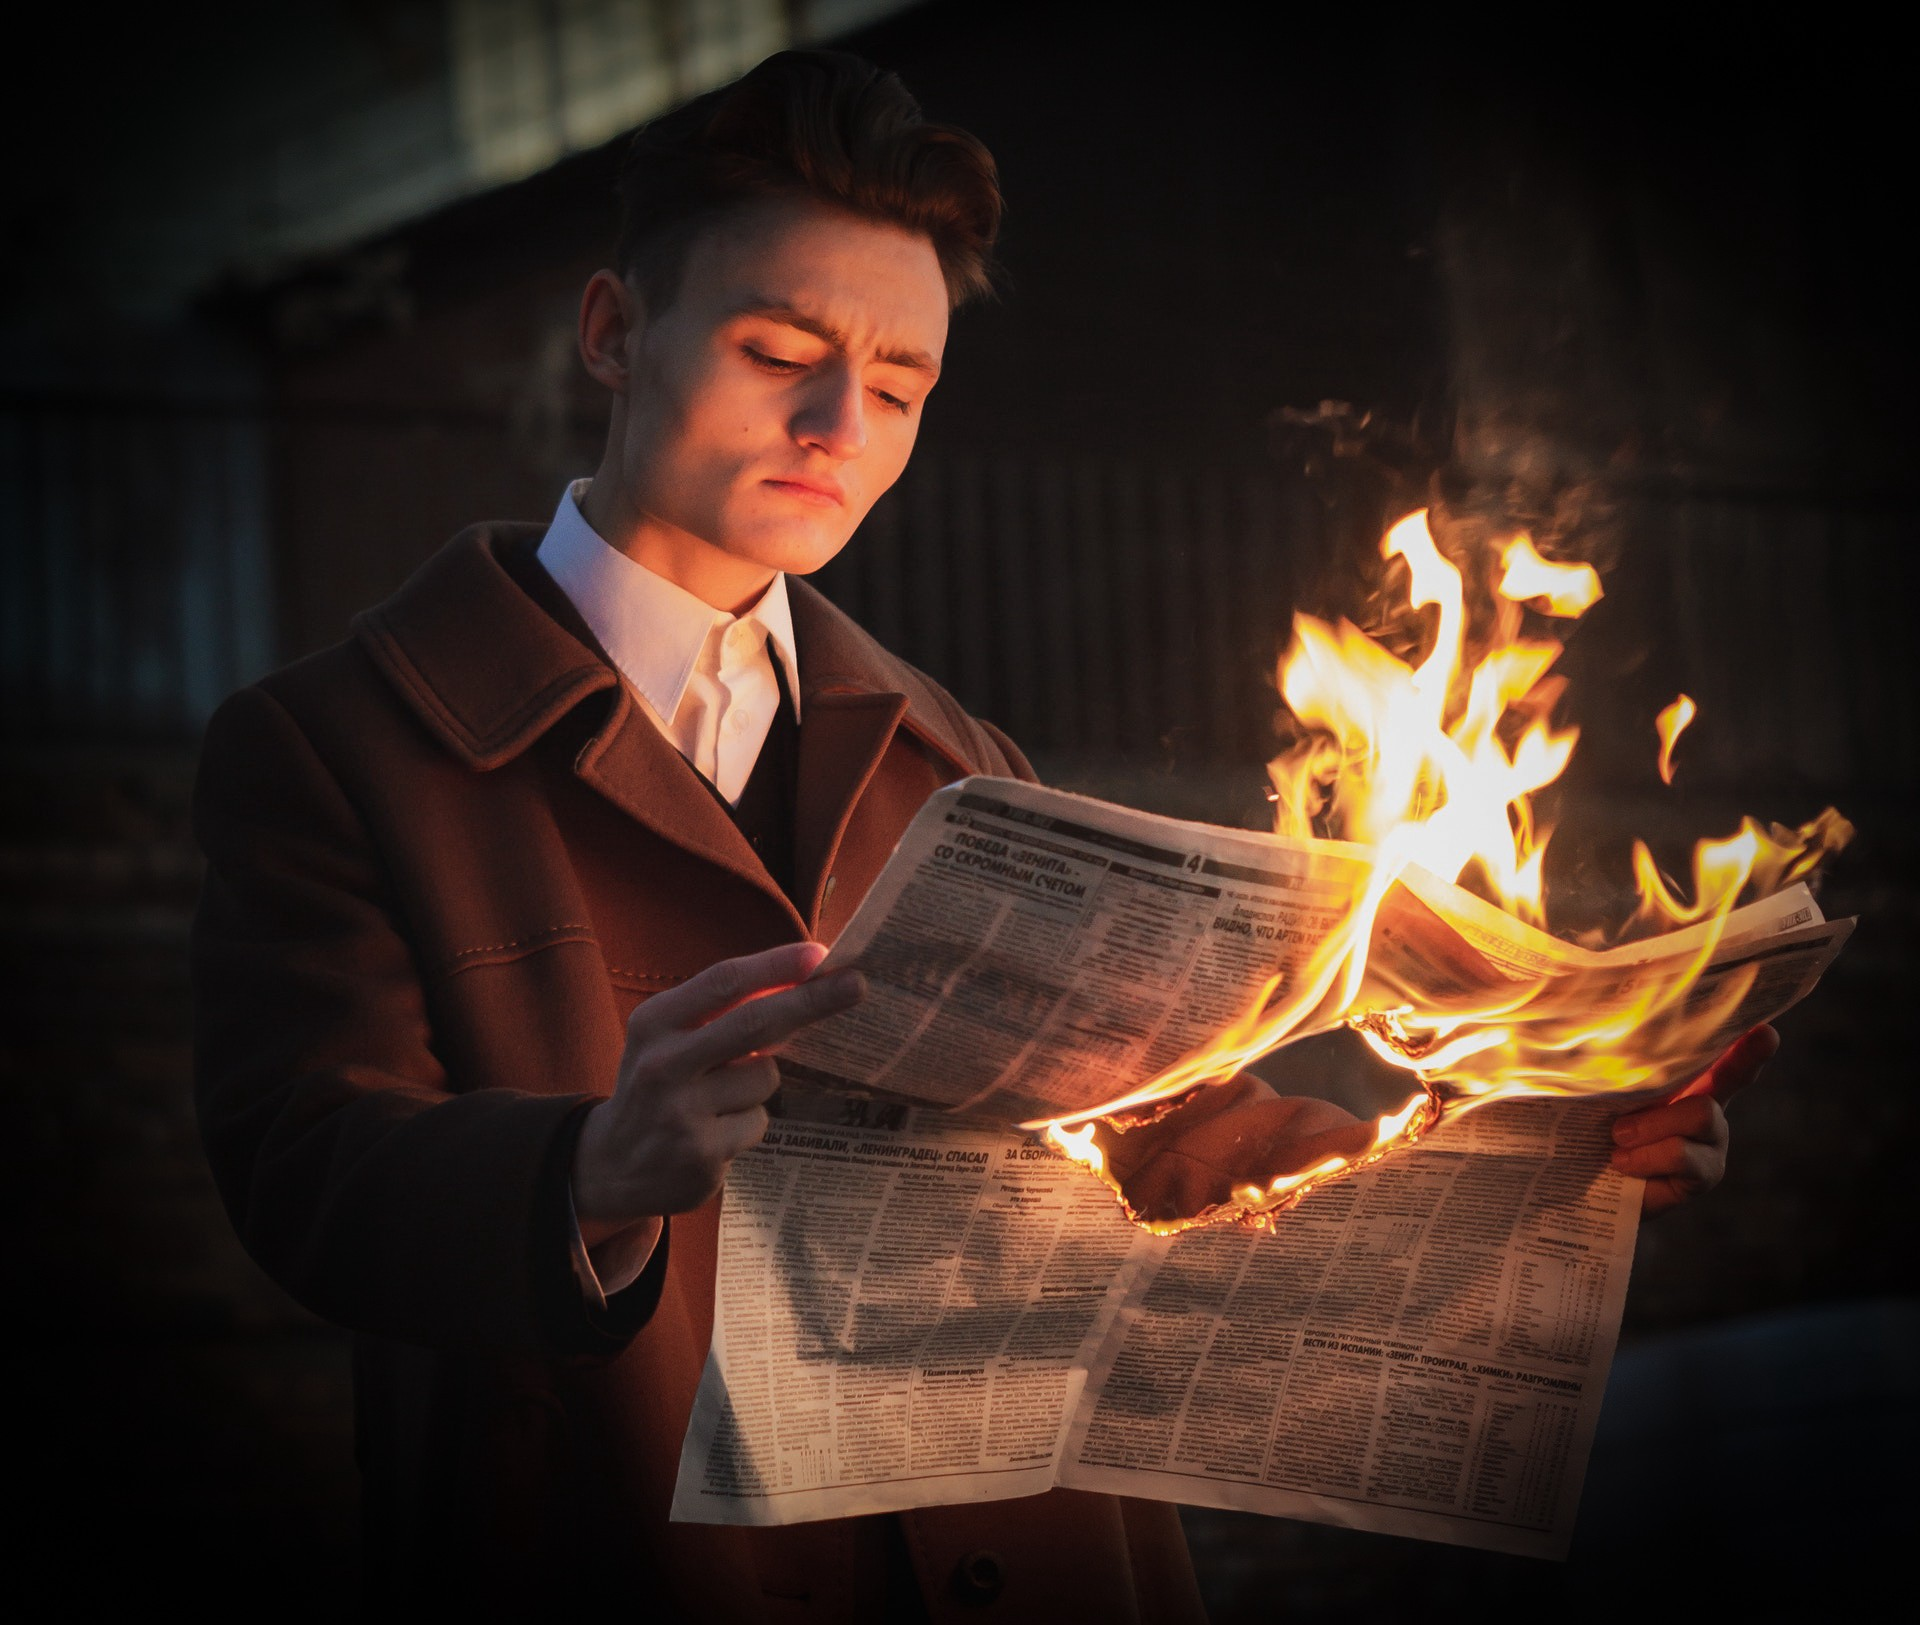 Studious man reading a burning newspaper in the dark. He'd better be quick!